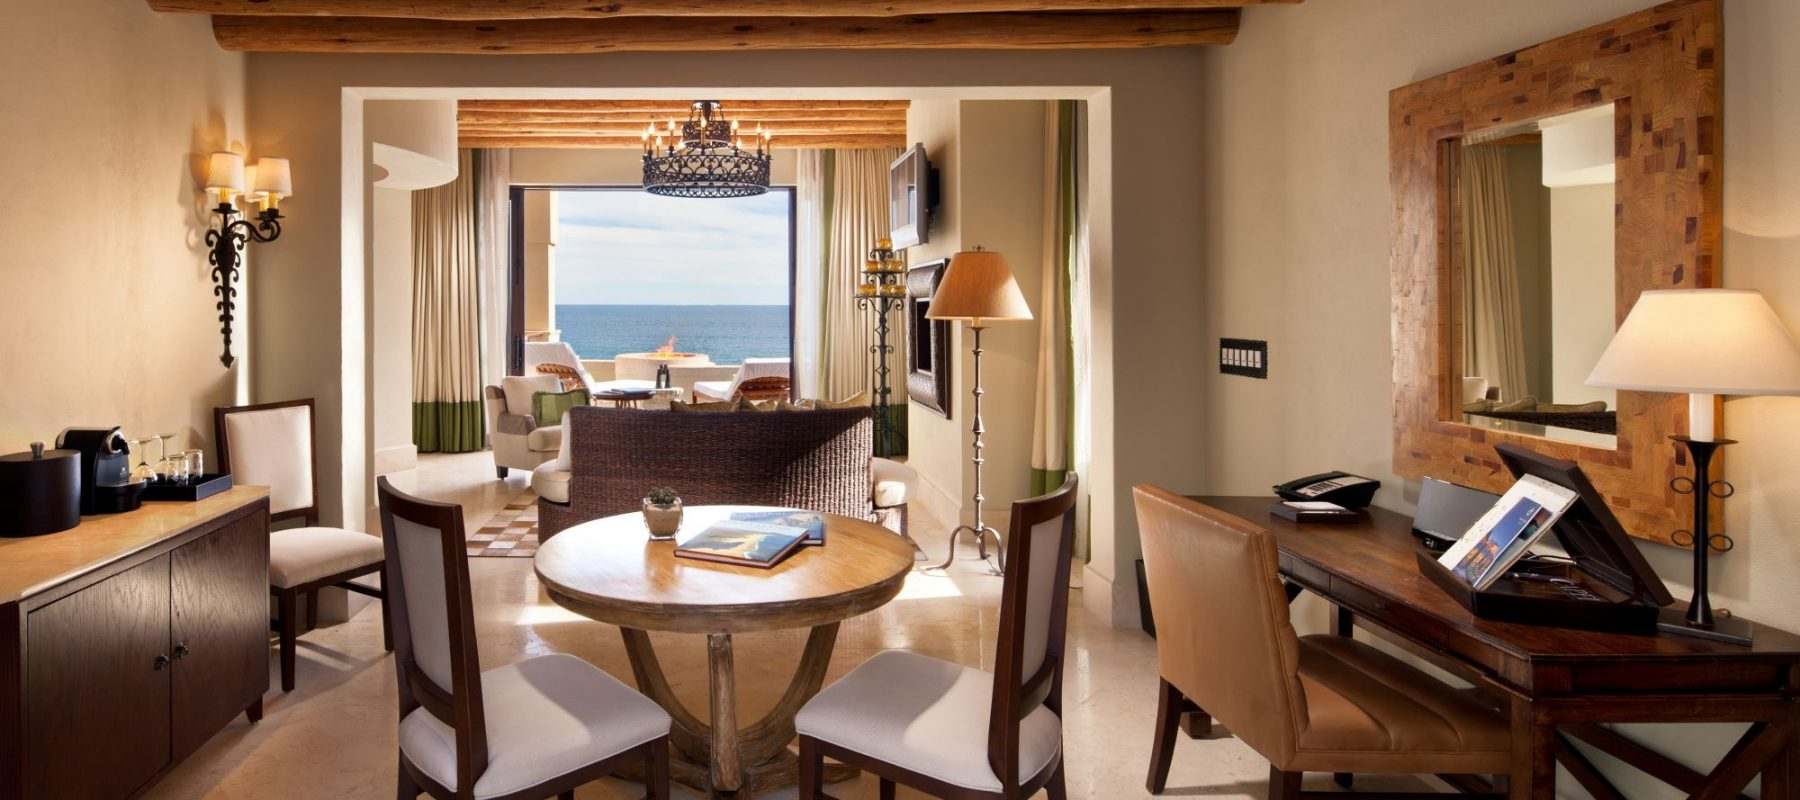 Luxurious interior of the ocean view room at The Resort at Pedregal